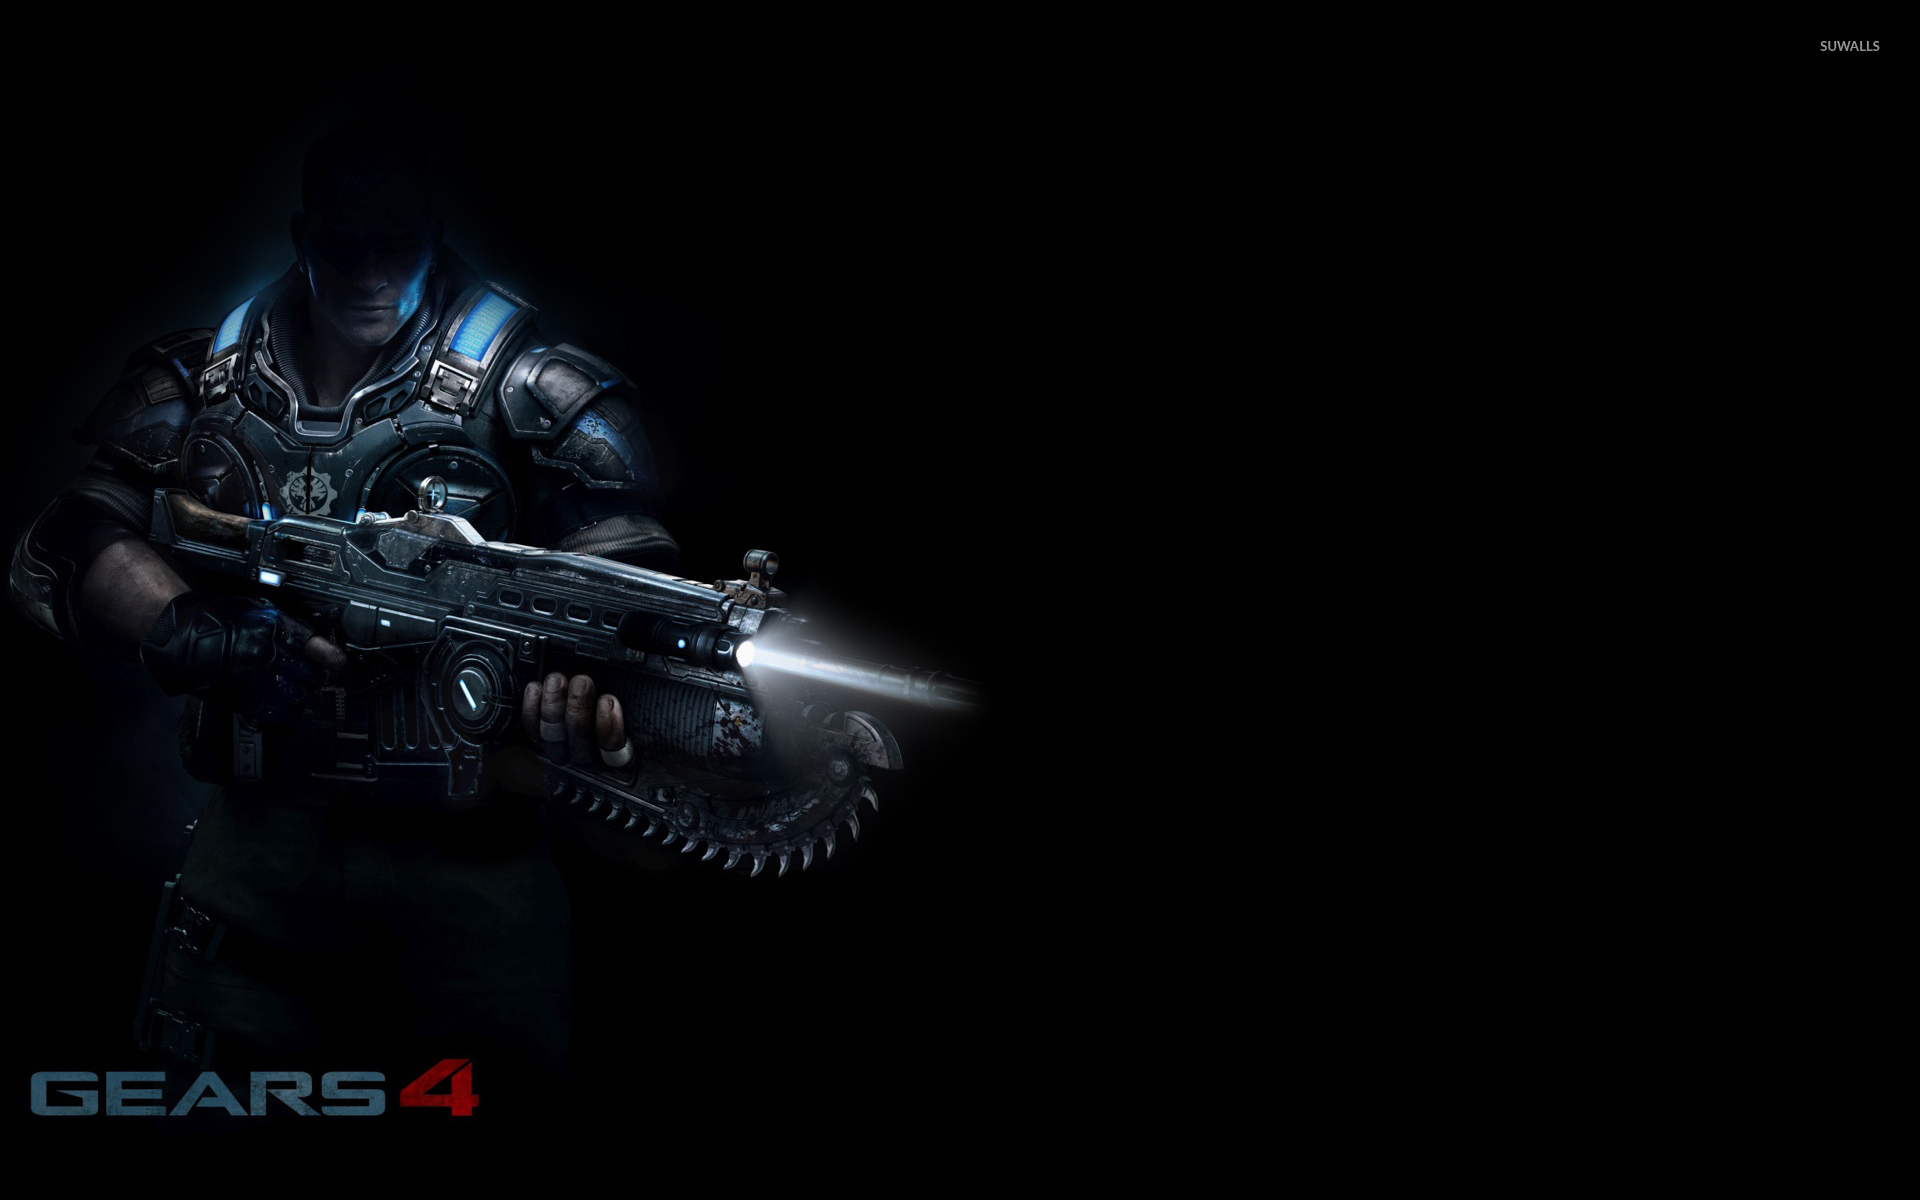 Jd In The Shadows In Gears Of War 4 Wallpaper Game Wallpapers